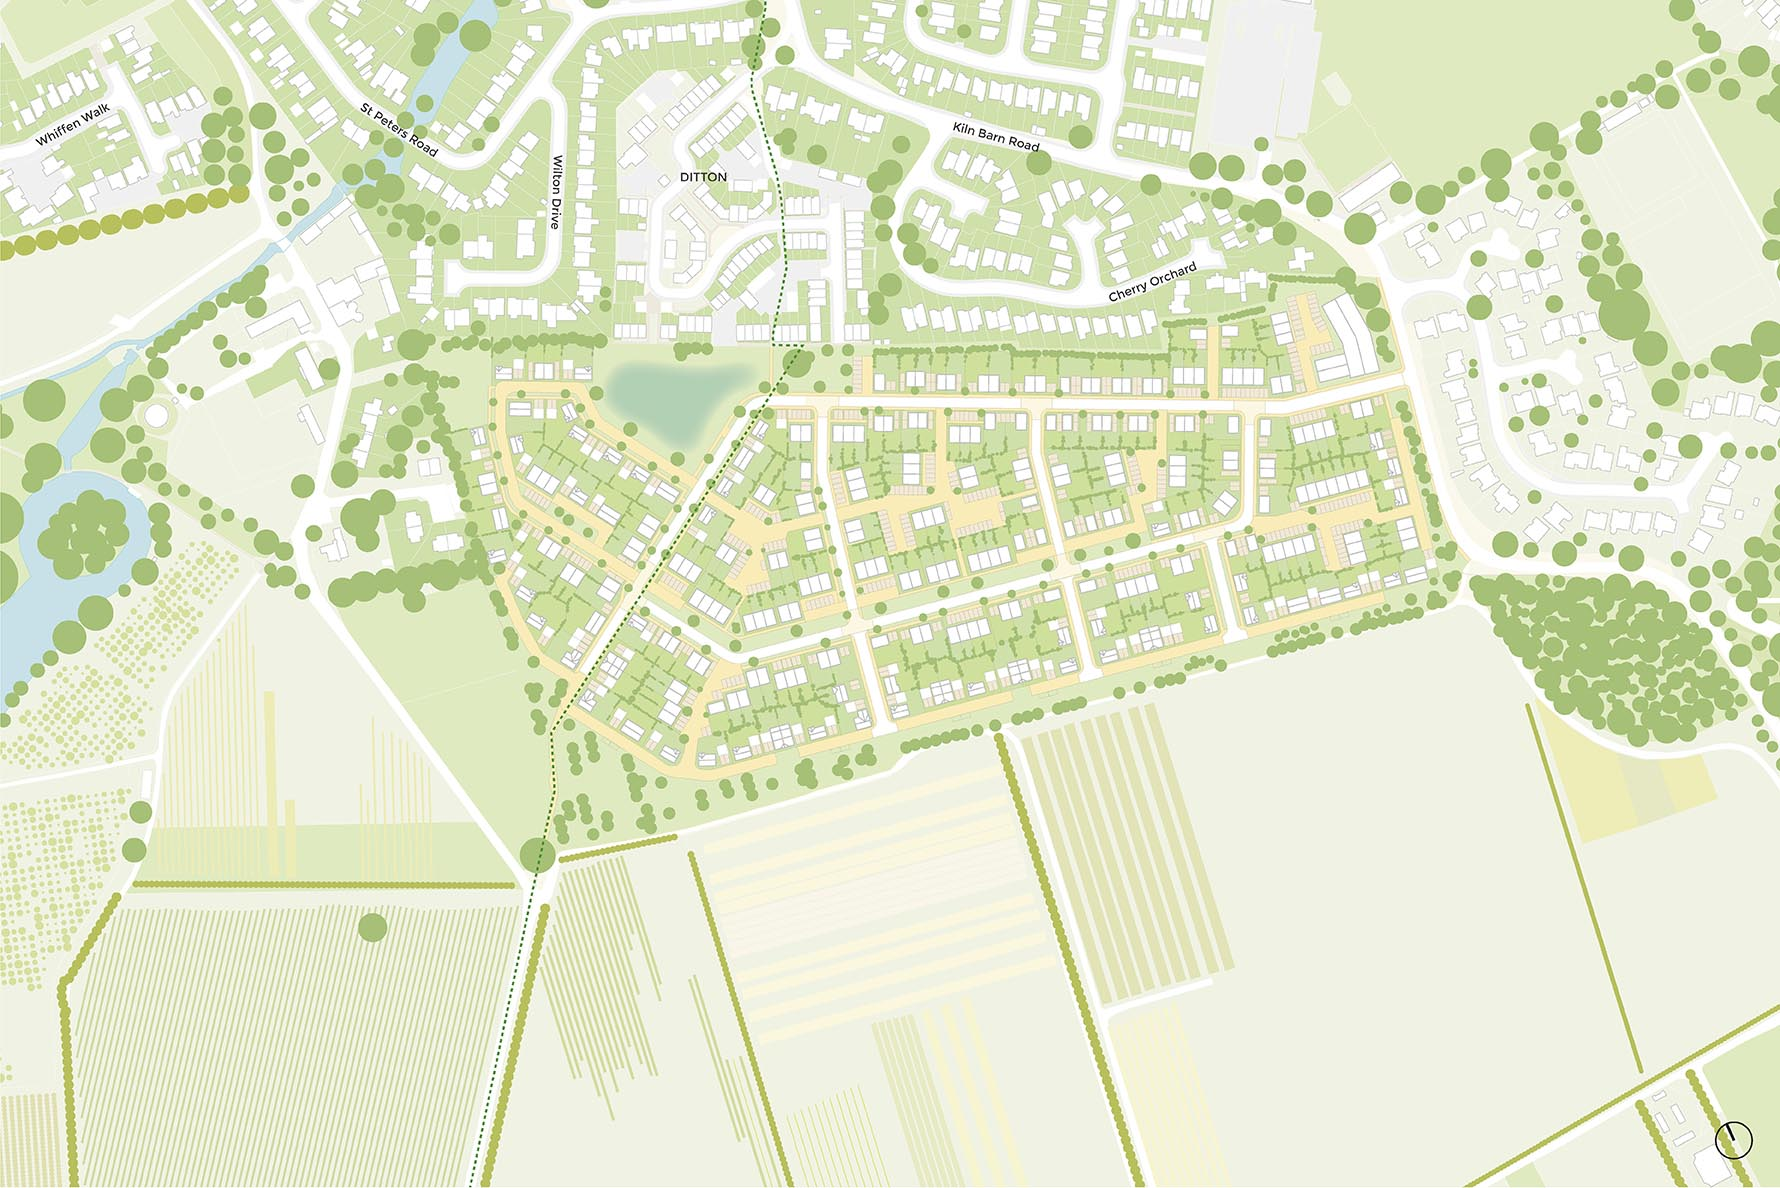 Ditton Edge illustrative master plan